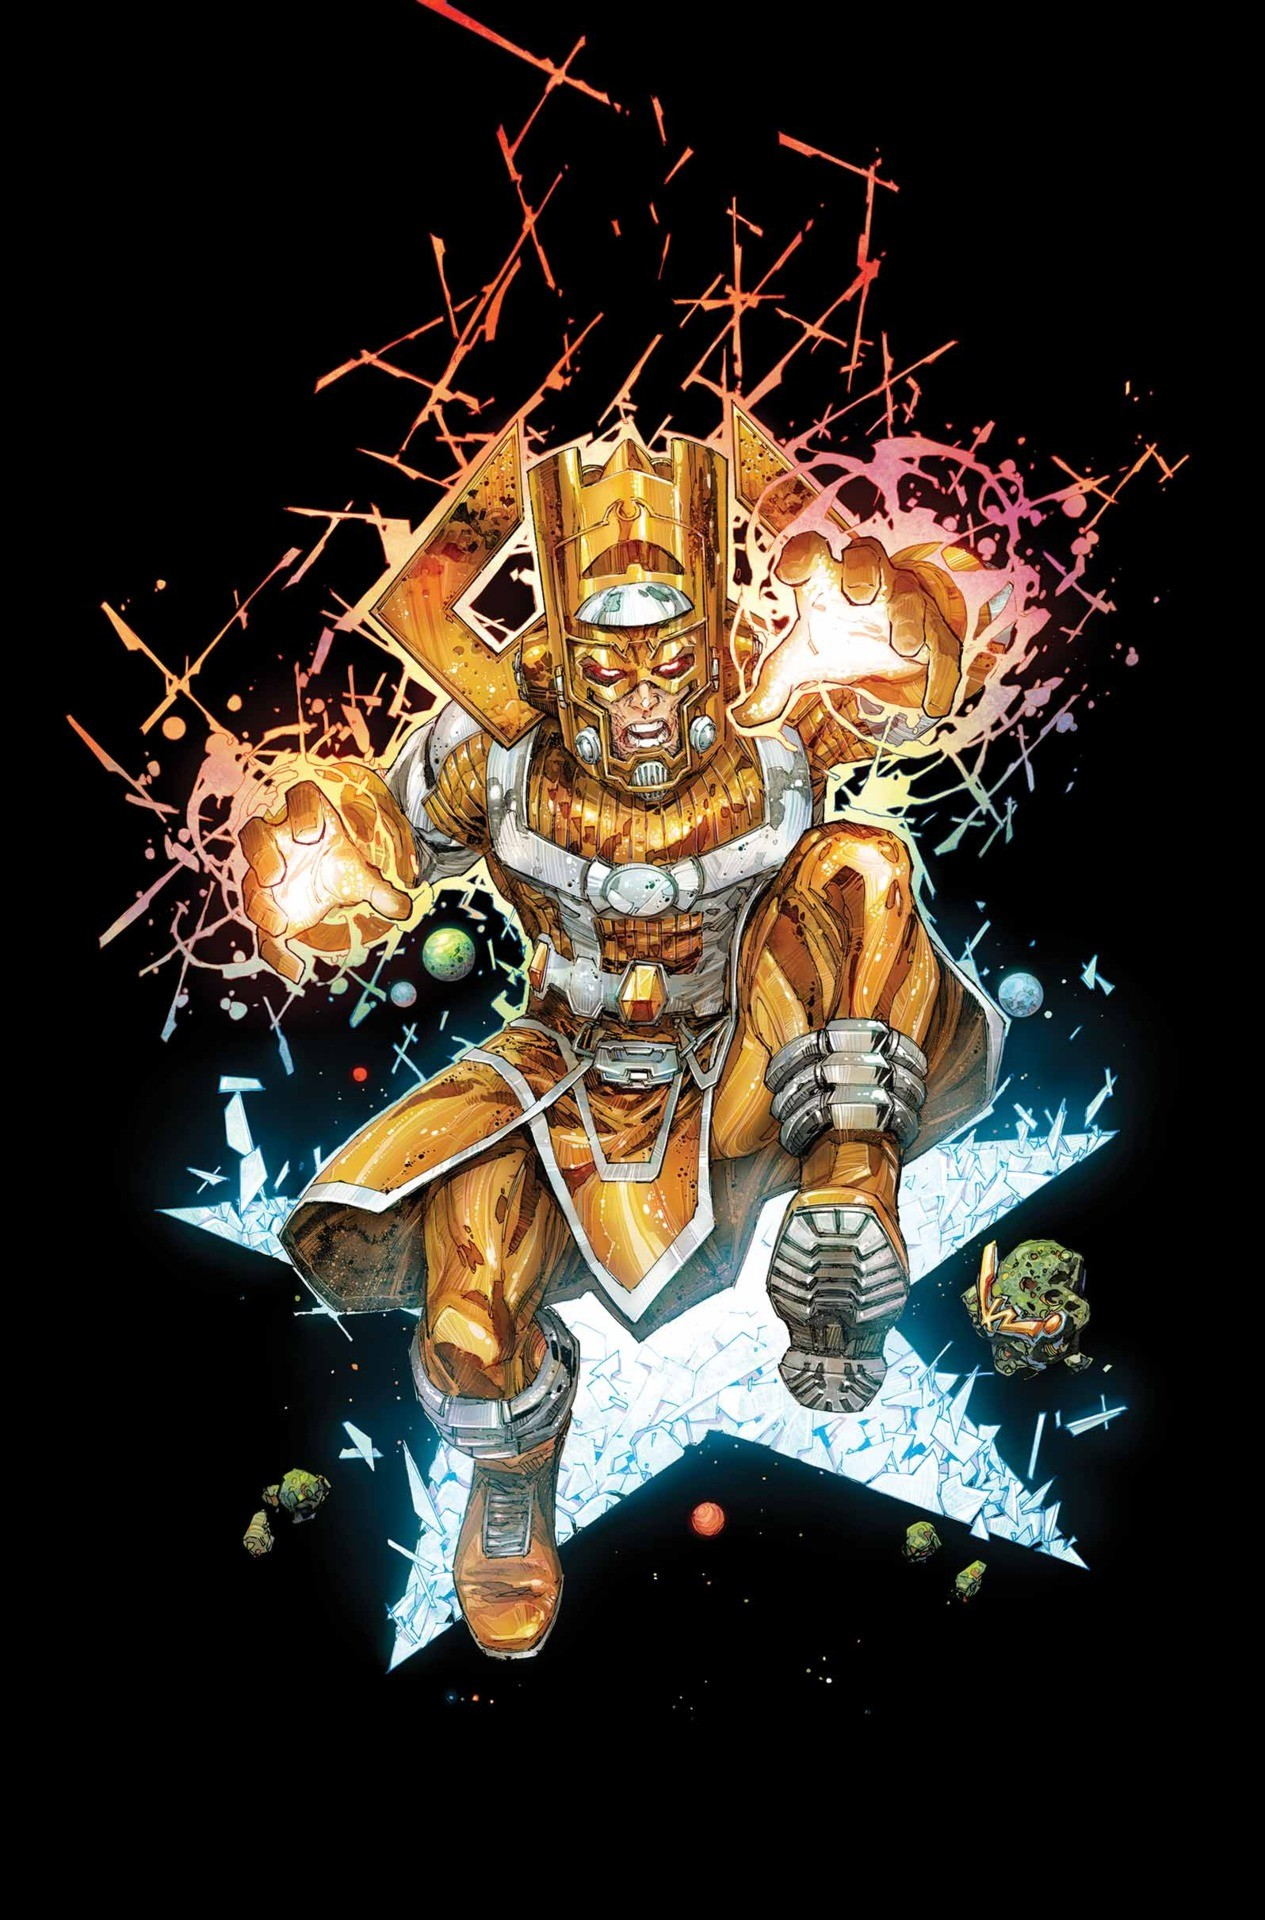 Res: 1265x1920, Can someone make this image of Galactus, Lifebringer, into a 1920x1080  wallpaper?